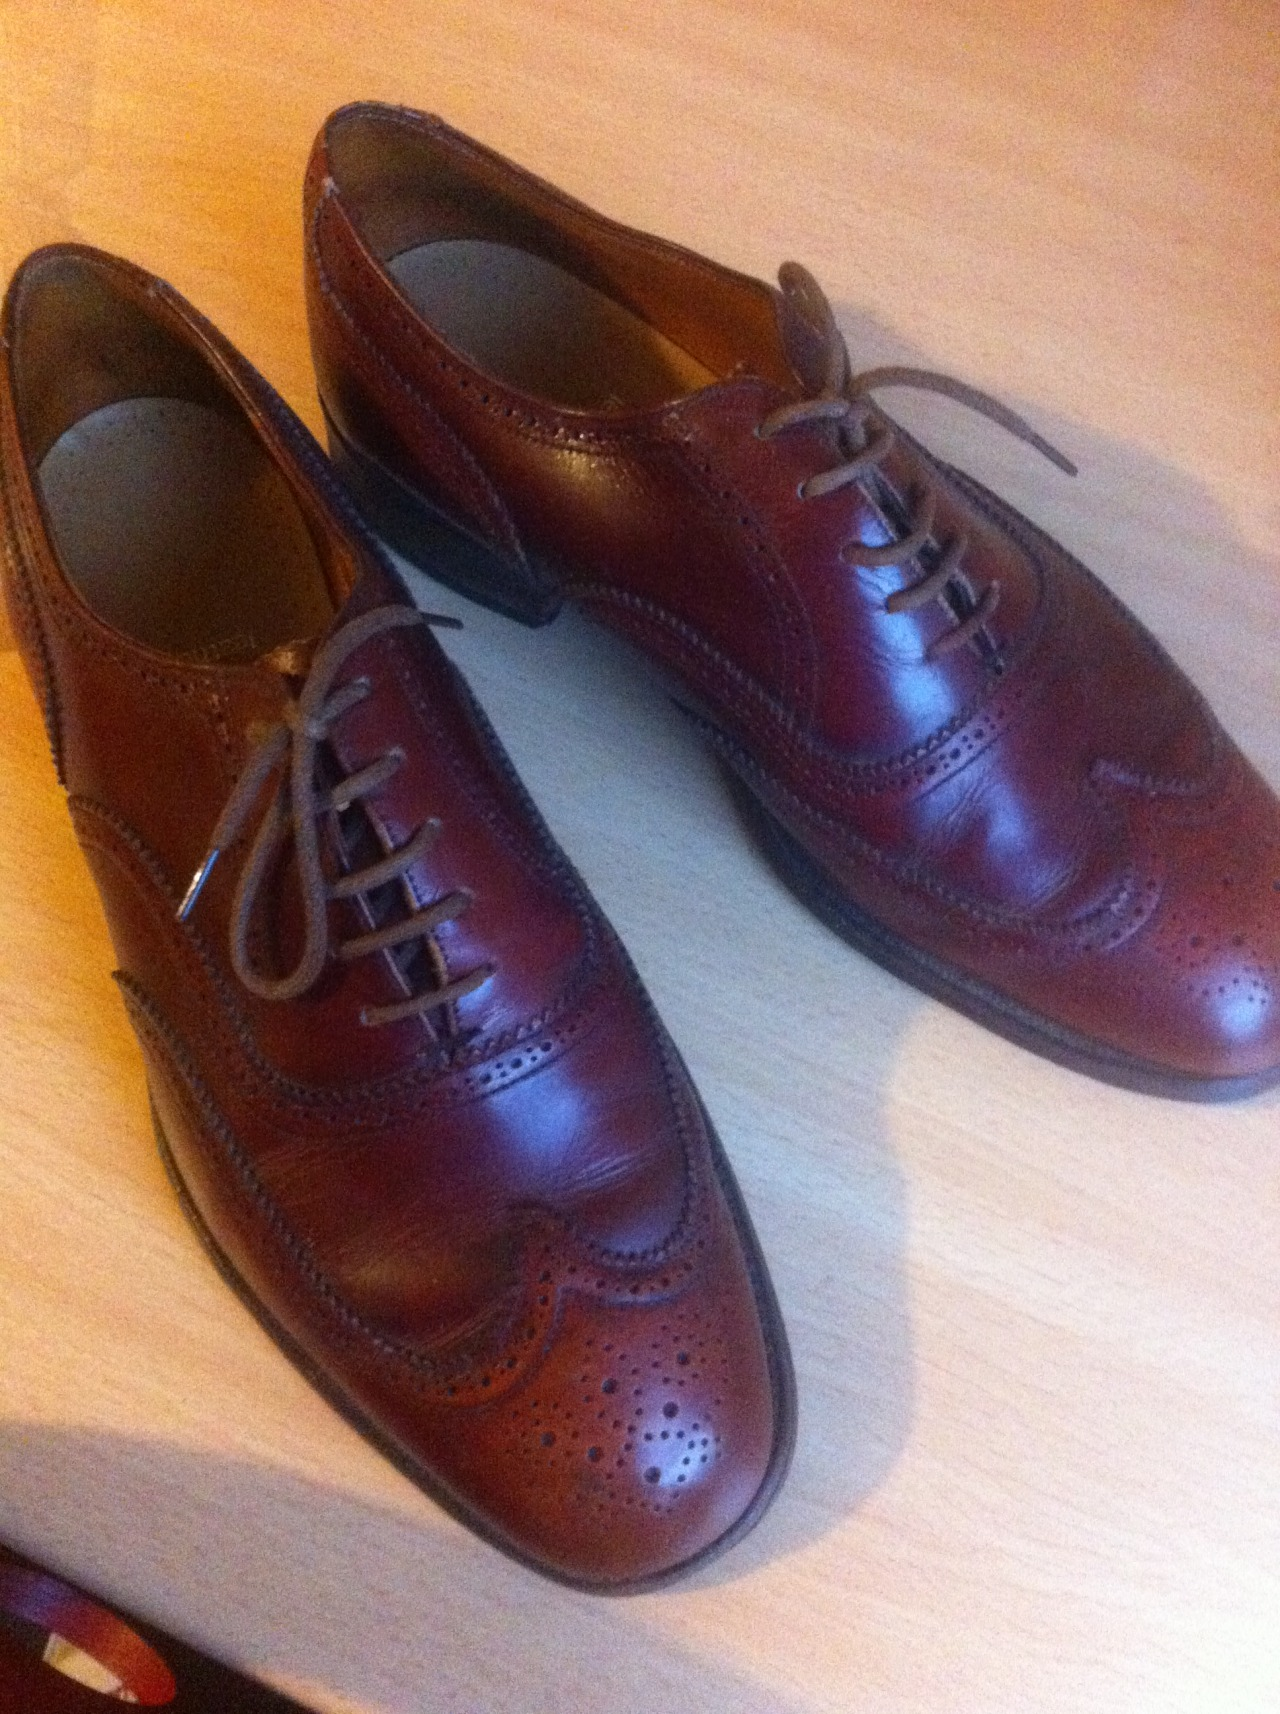 Got me a pair of vintage Grensons for the Spring:)